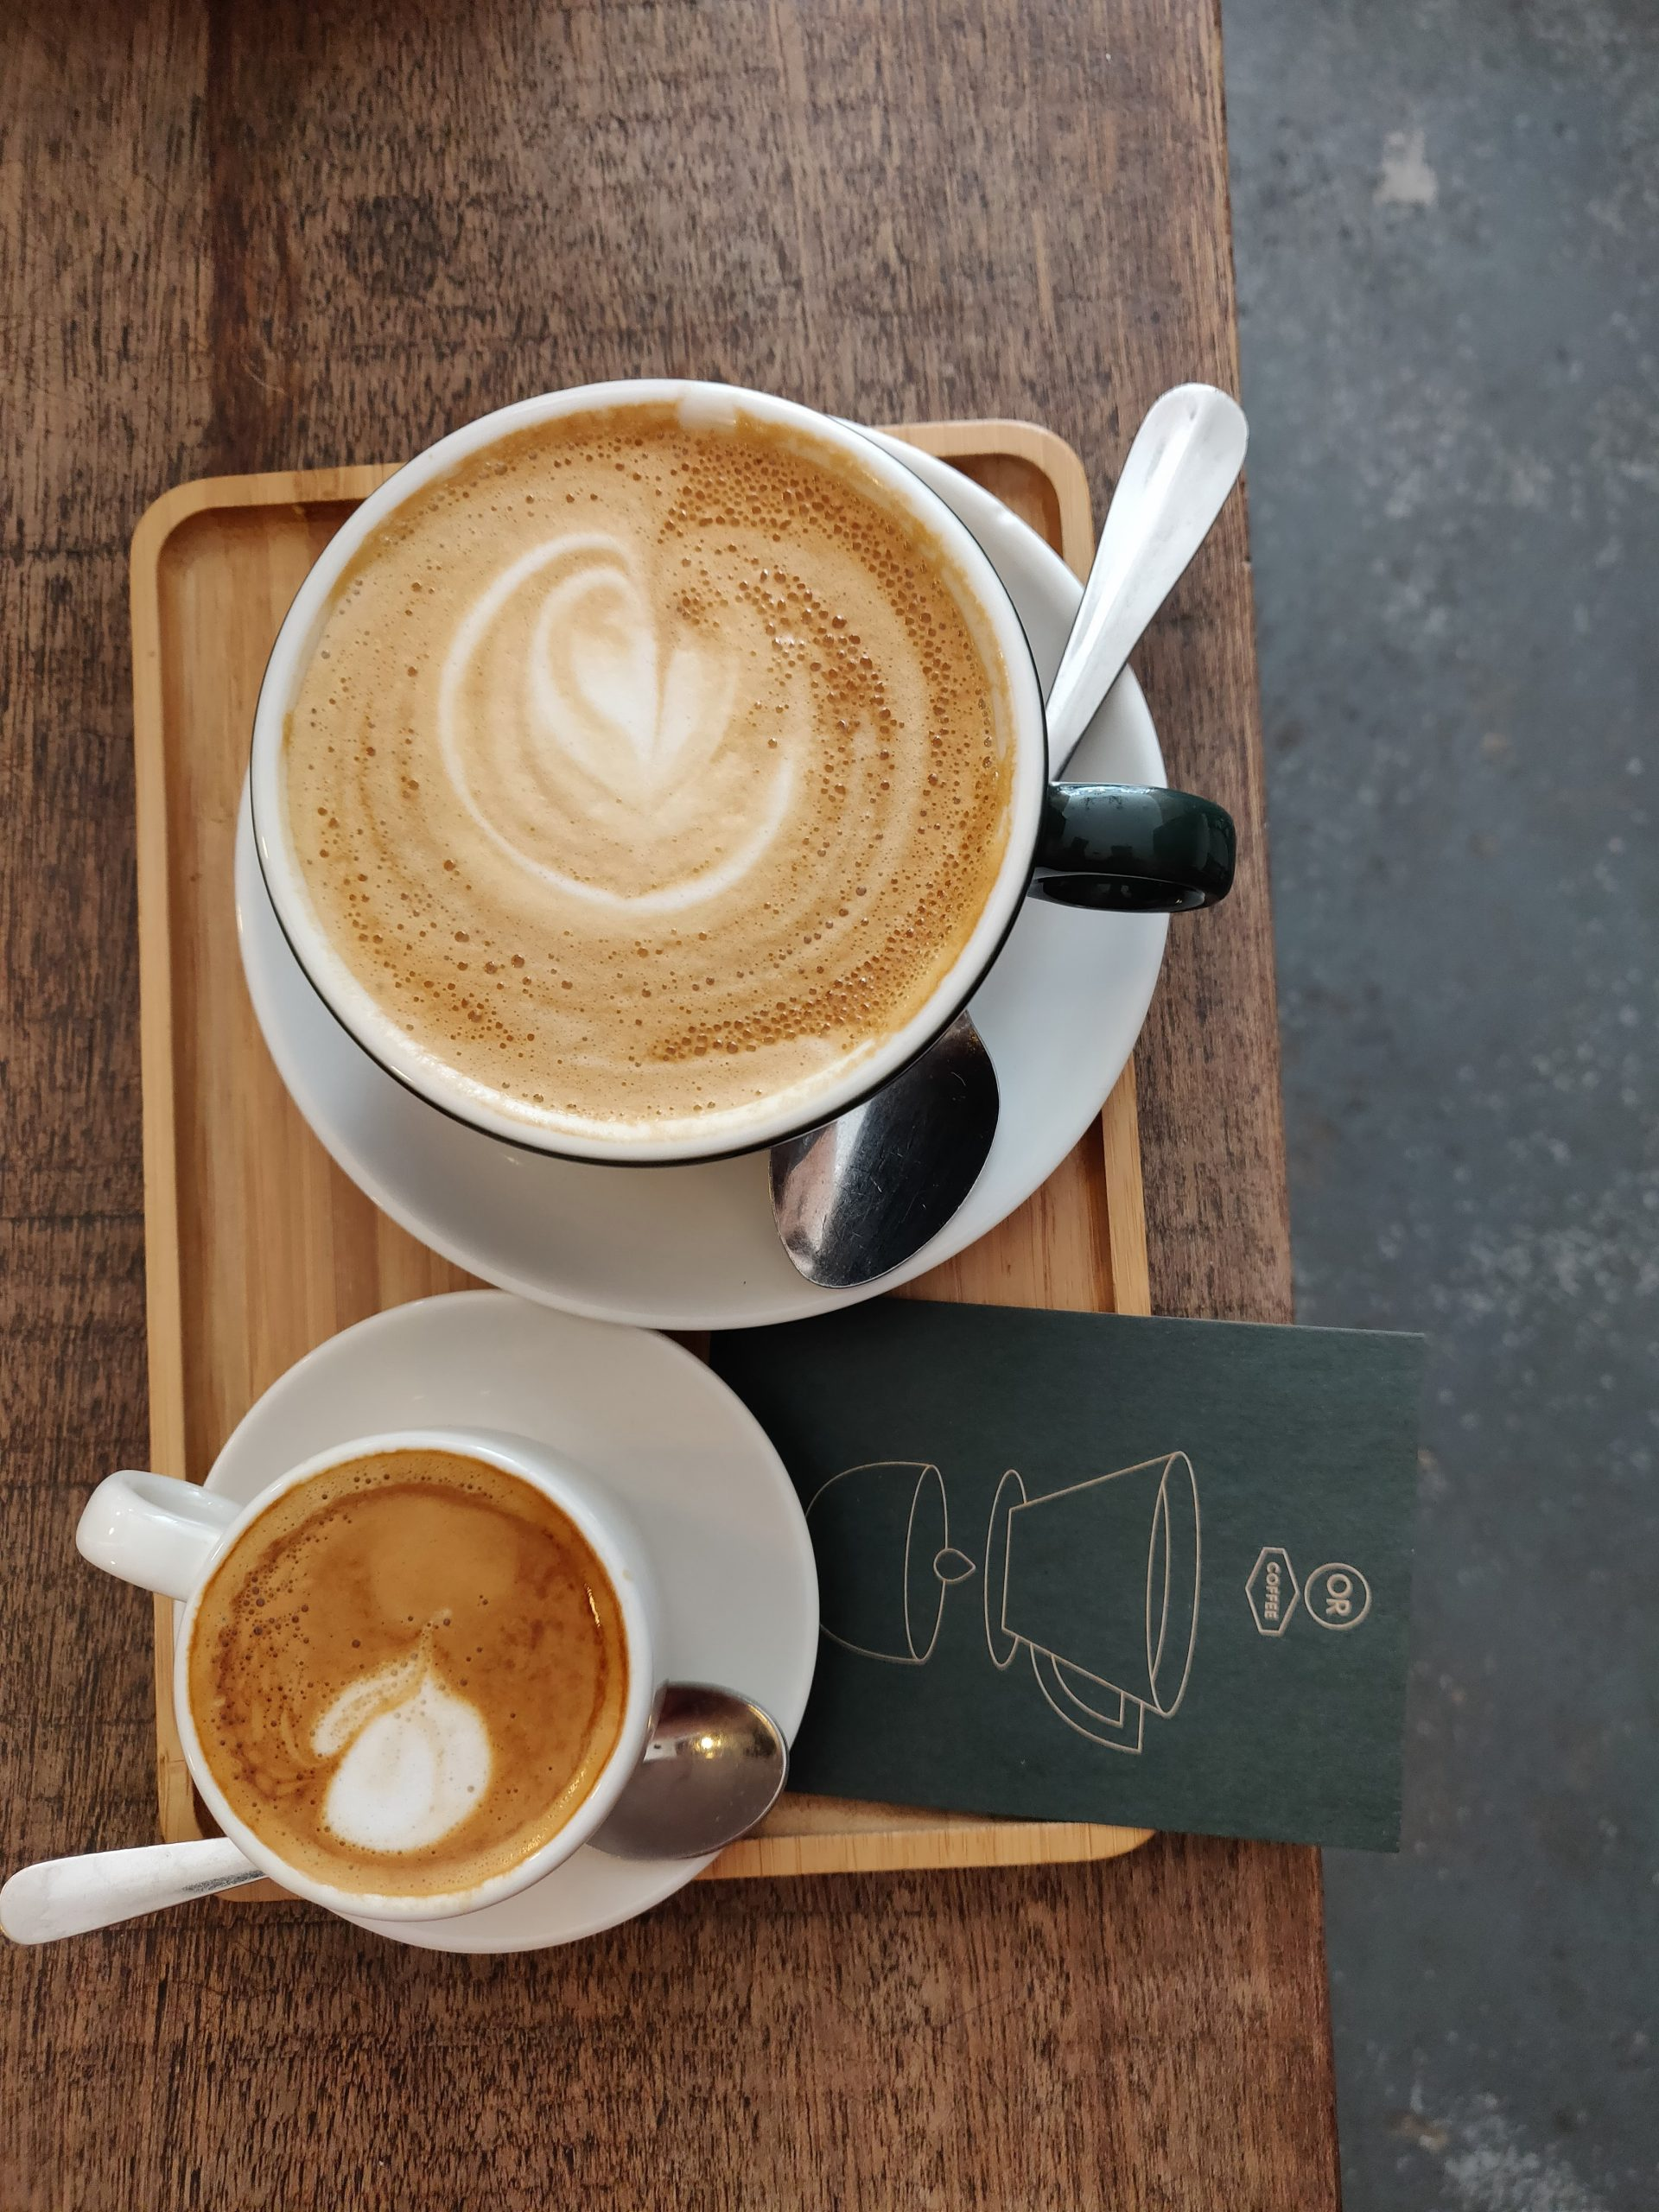 OR Coffee Bar – City Center Brussel